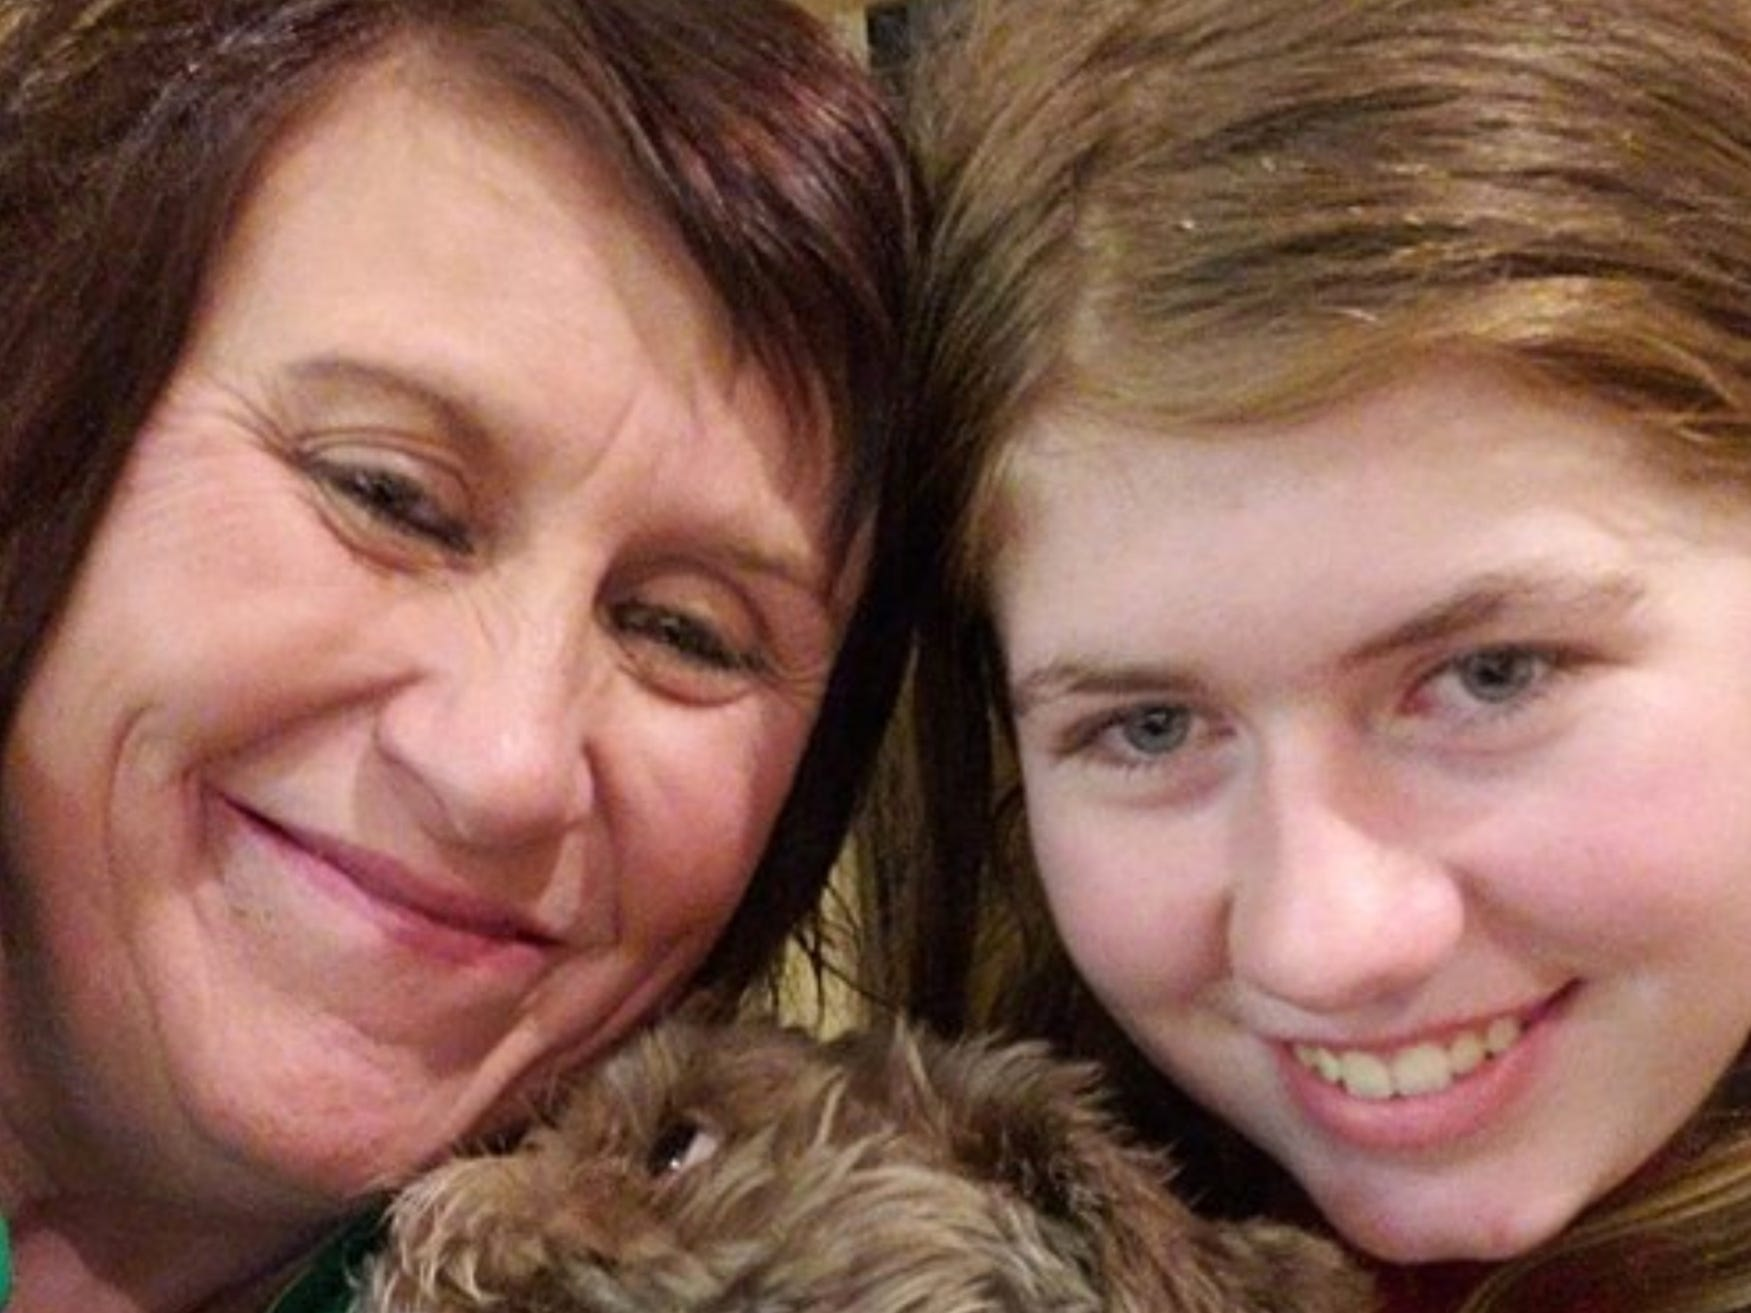 Family says Jayme Closs is grateful for donations, gifts